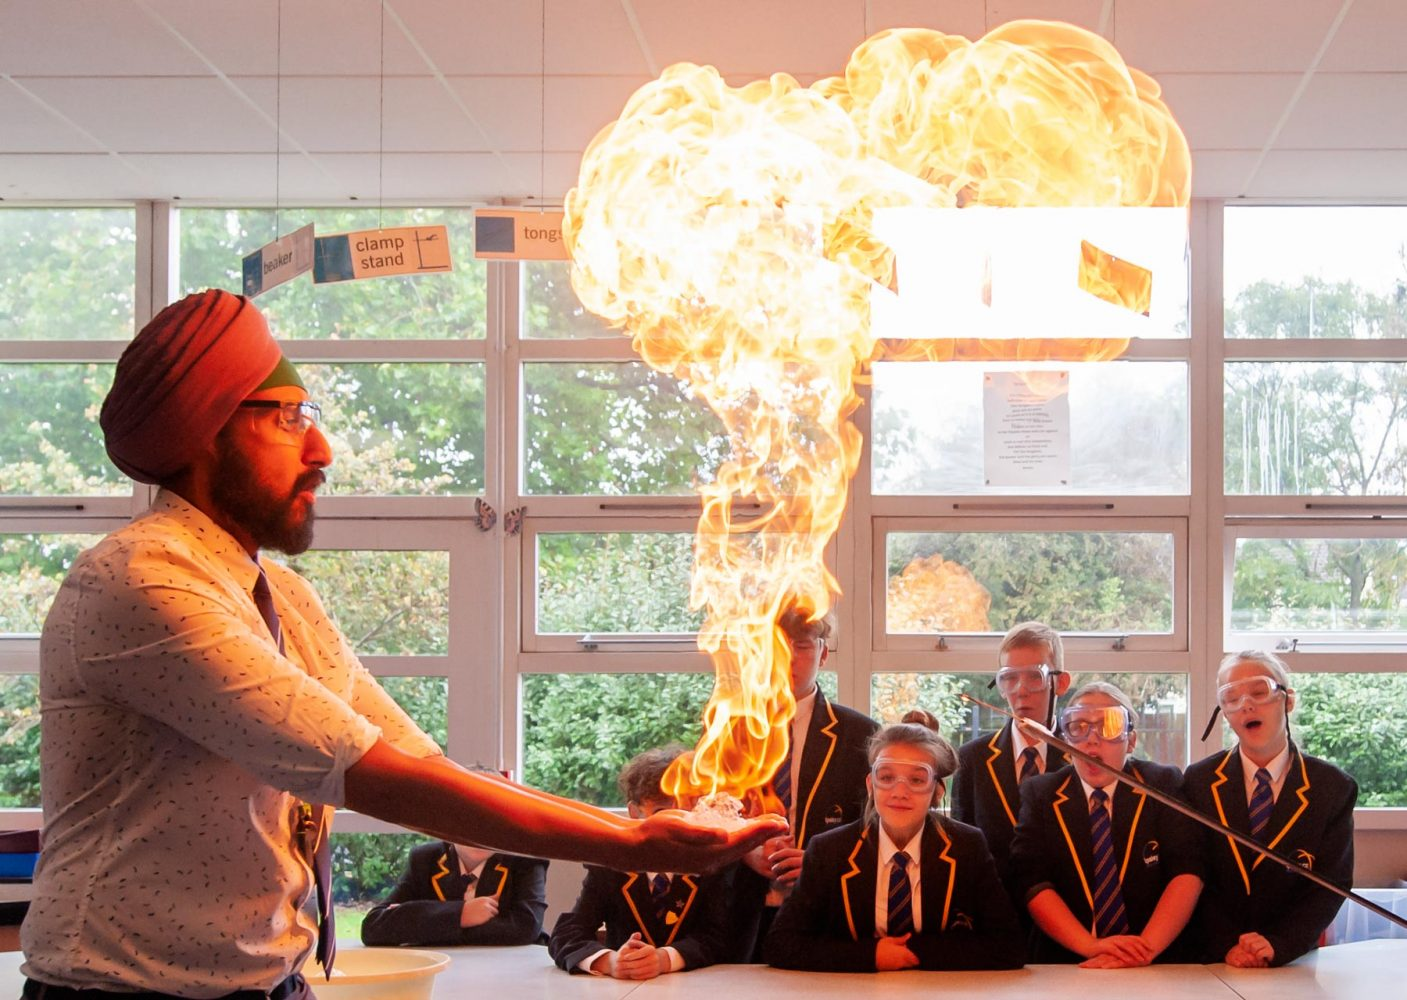 School website photography of methane bubble demonstration in the classroom